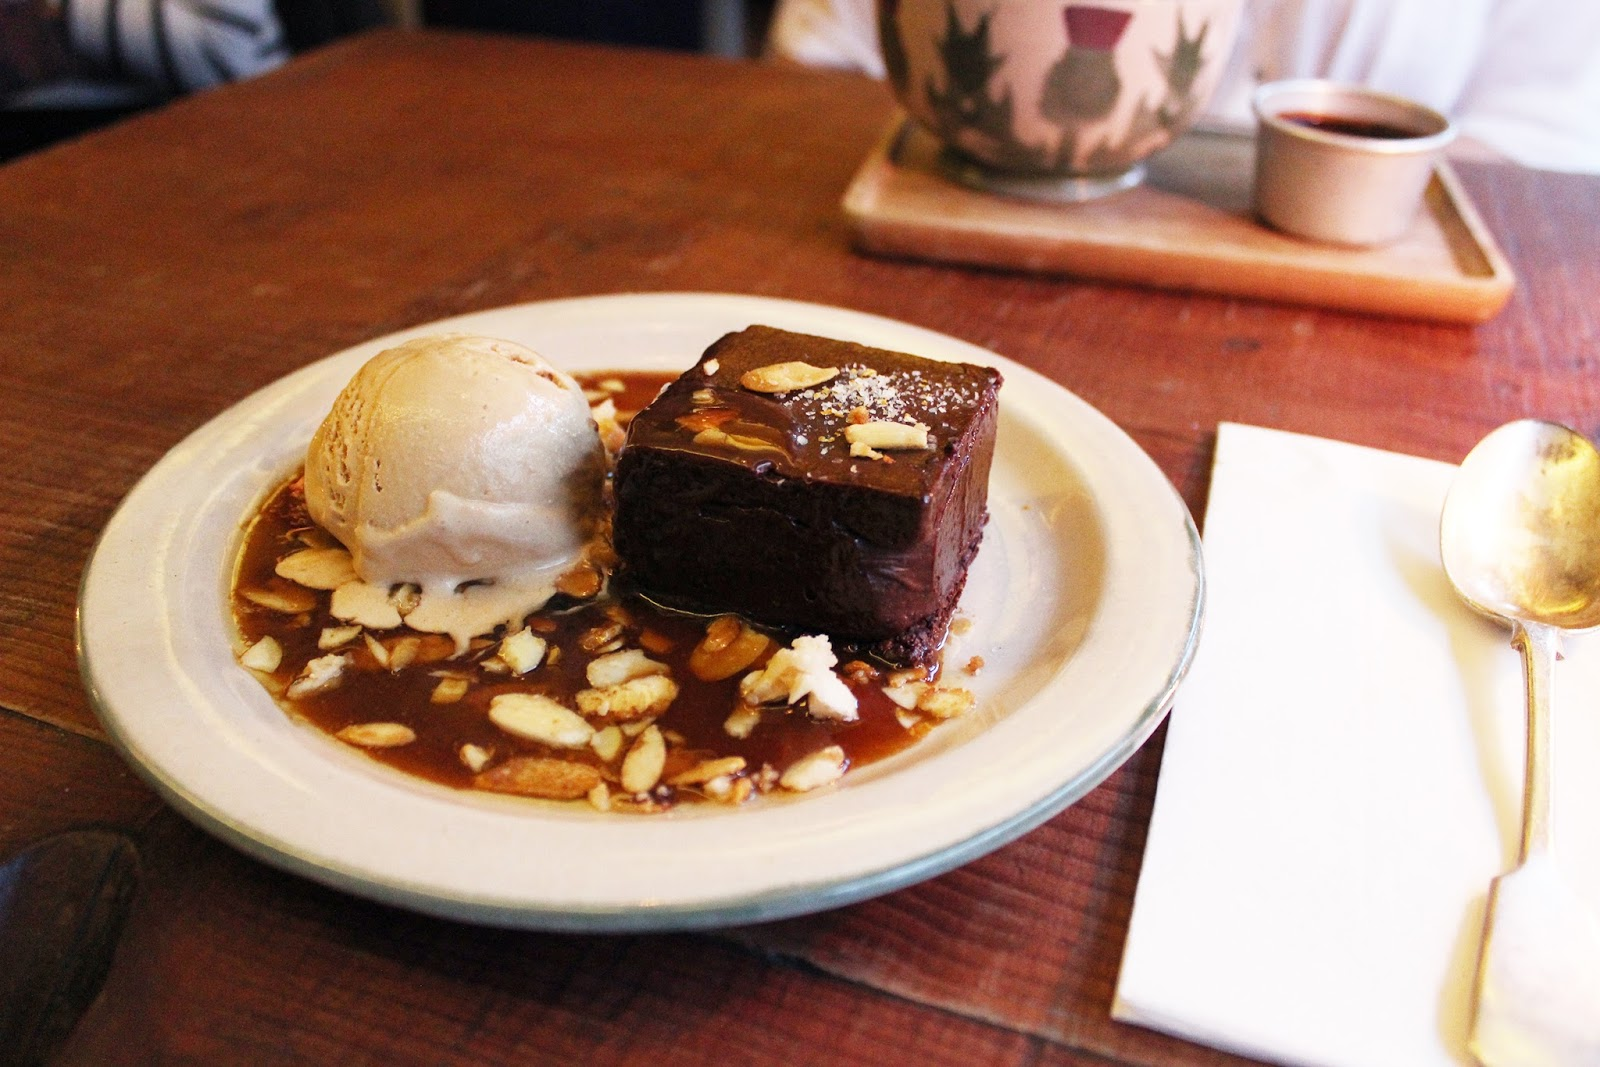 Mac and Wild restaurant review - chocolate dessert